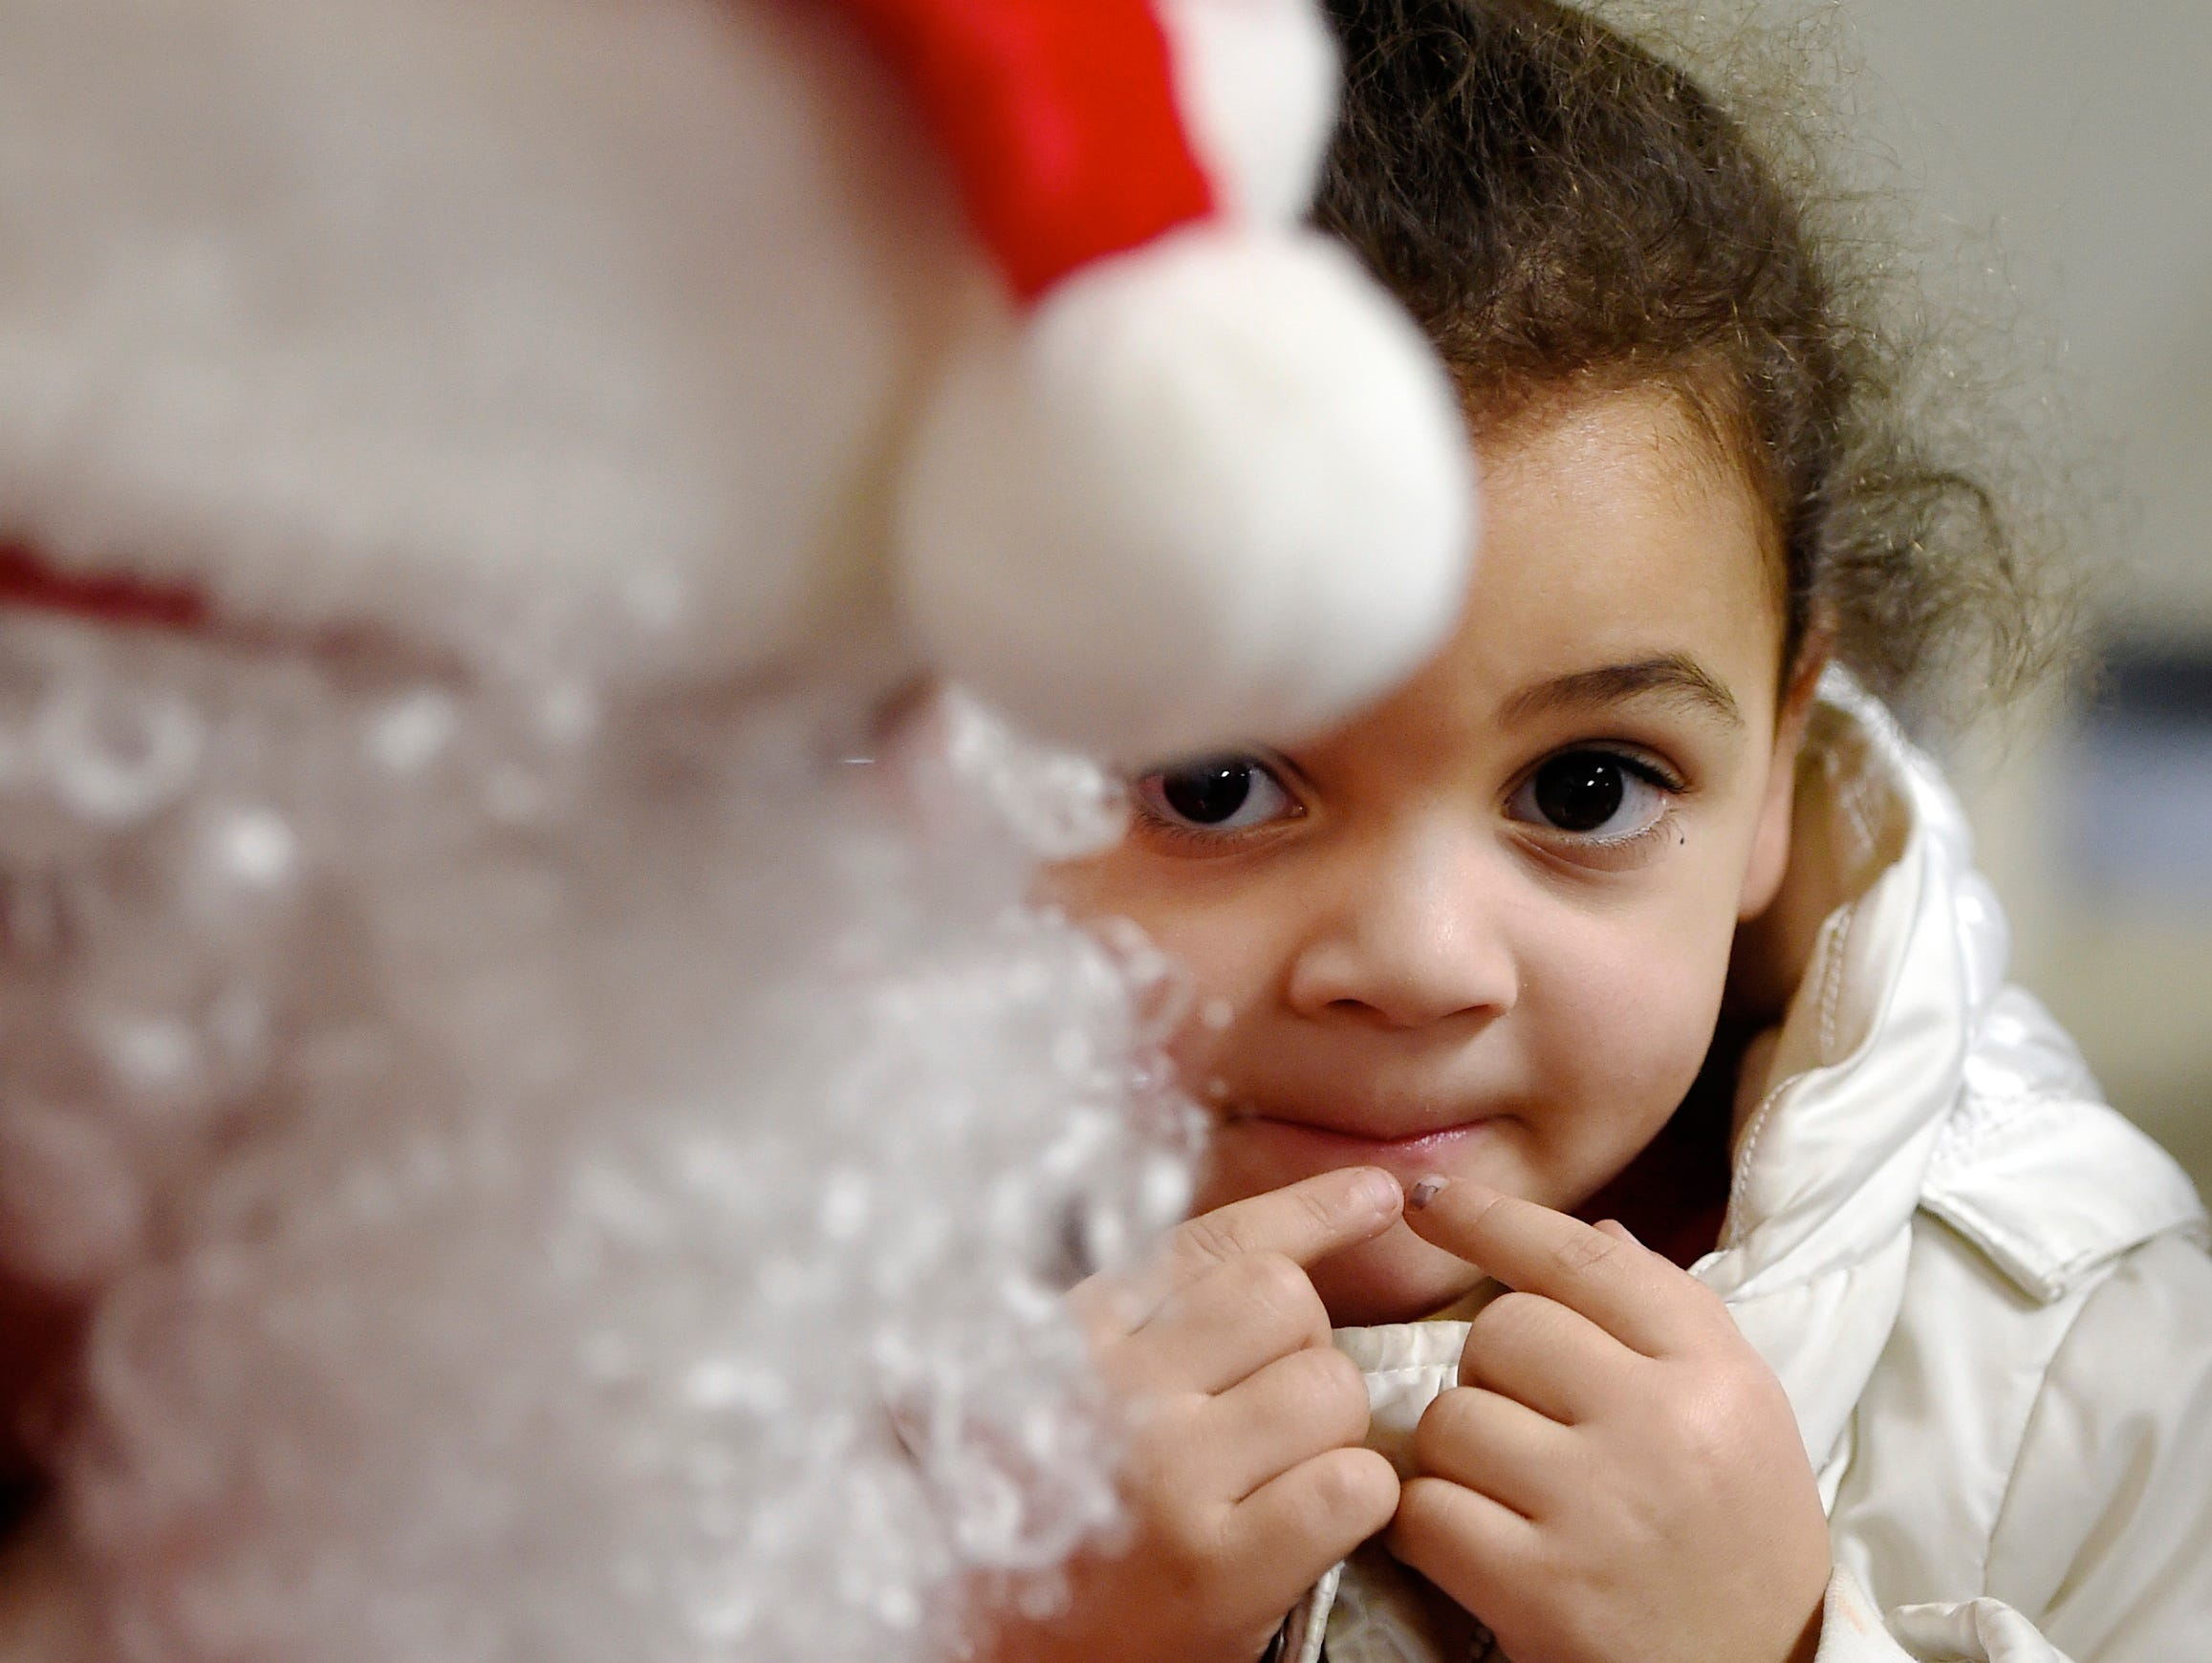 Taking her time, Rianna Burress, 4 years-old, doesn't seem quite sure what to tell Santa as she takes her turn on his knee during visit to a Christmas party for children living at the Ozanam Family Shelter. The party held at Saint Anthony Catholic Church was sponsored by the Mount Vernon-based Church of God's Mission.